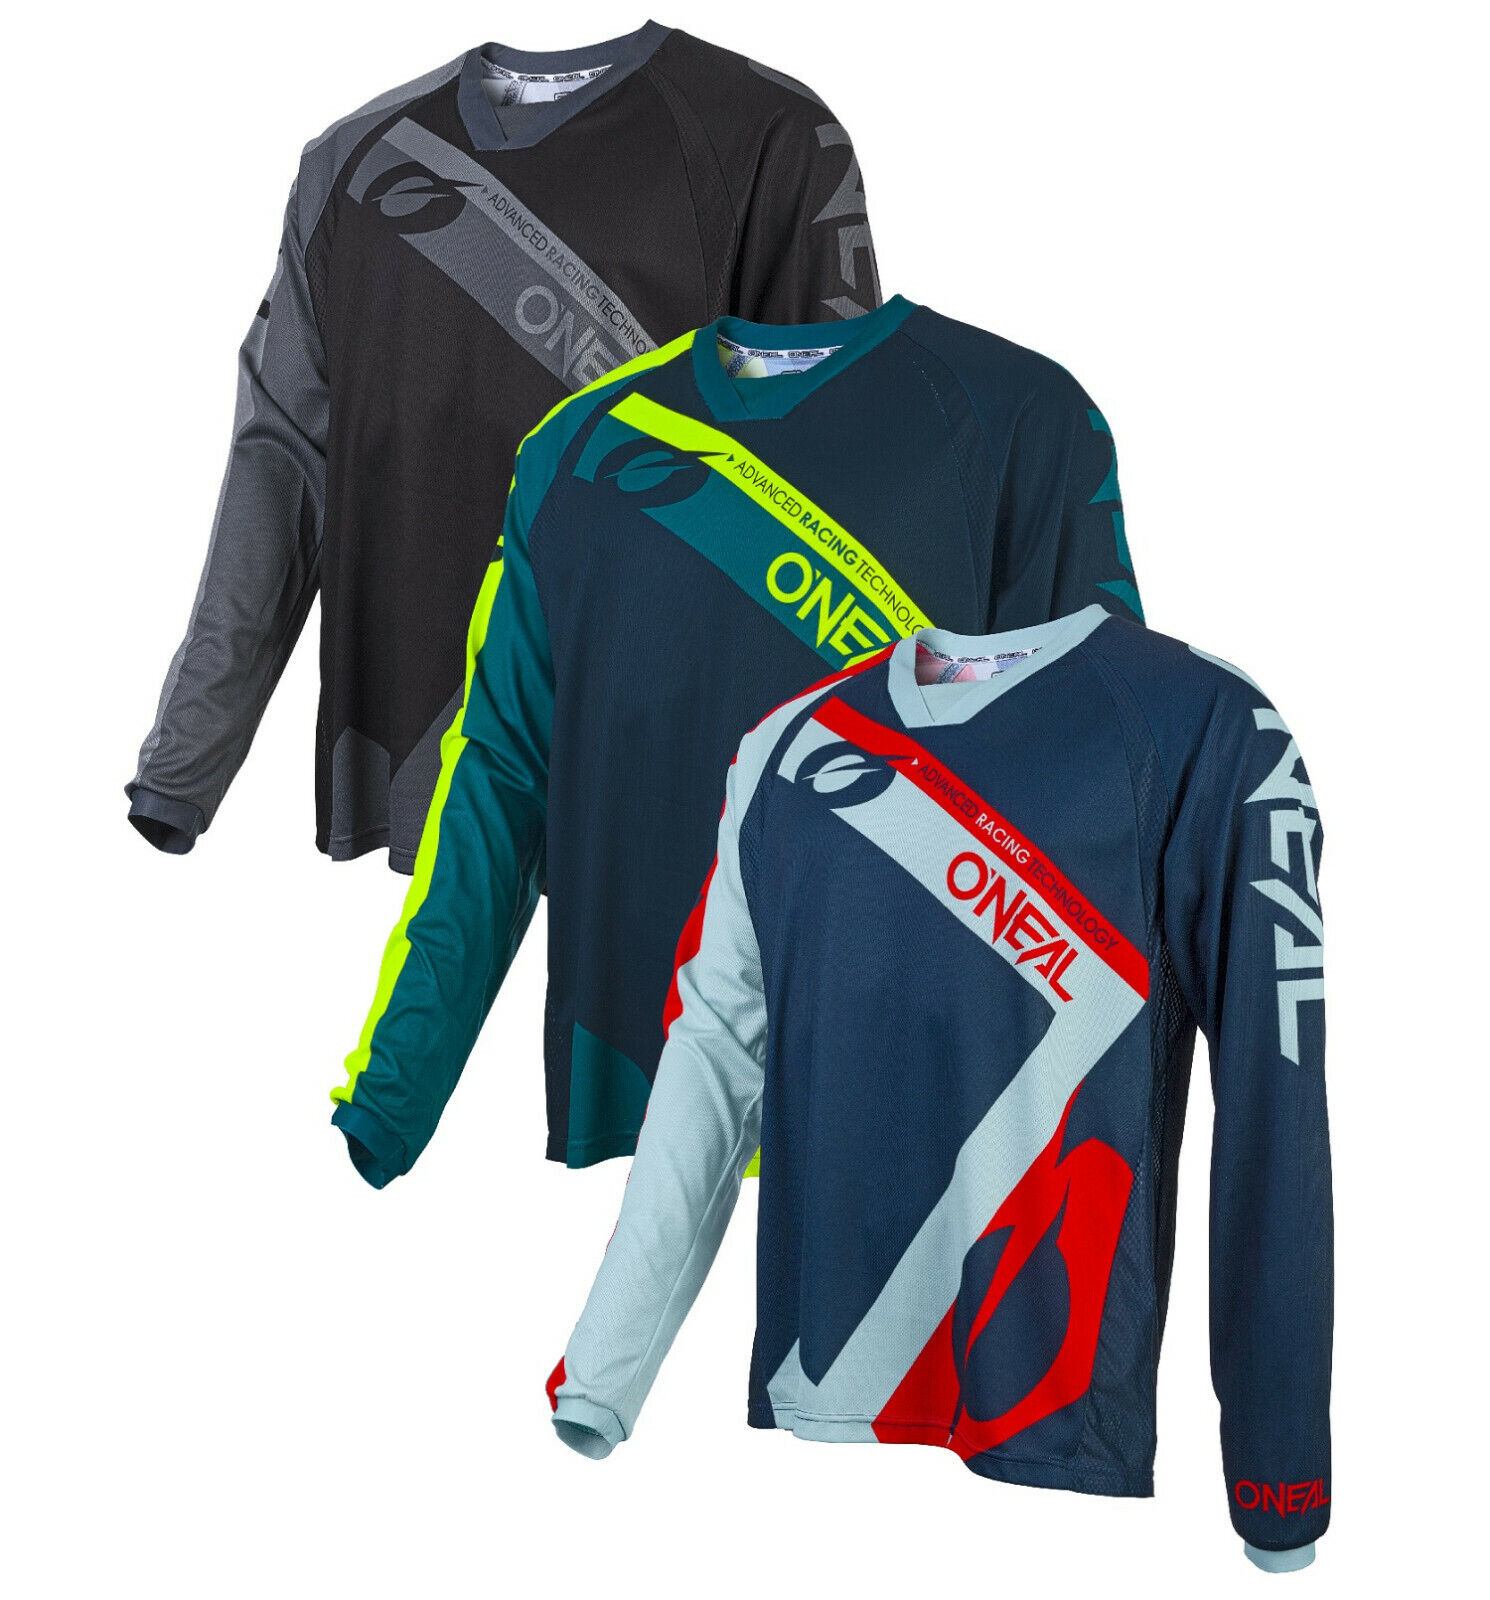 O'Neal Element FR Hybrid Jersey, MX Motocross Mountainbike, MTB, Downhill Trikot